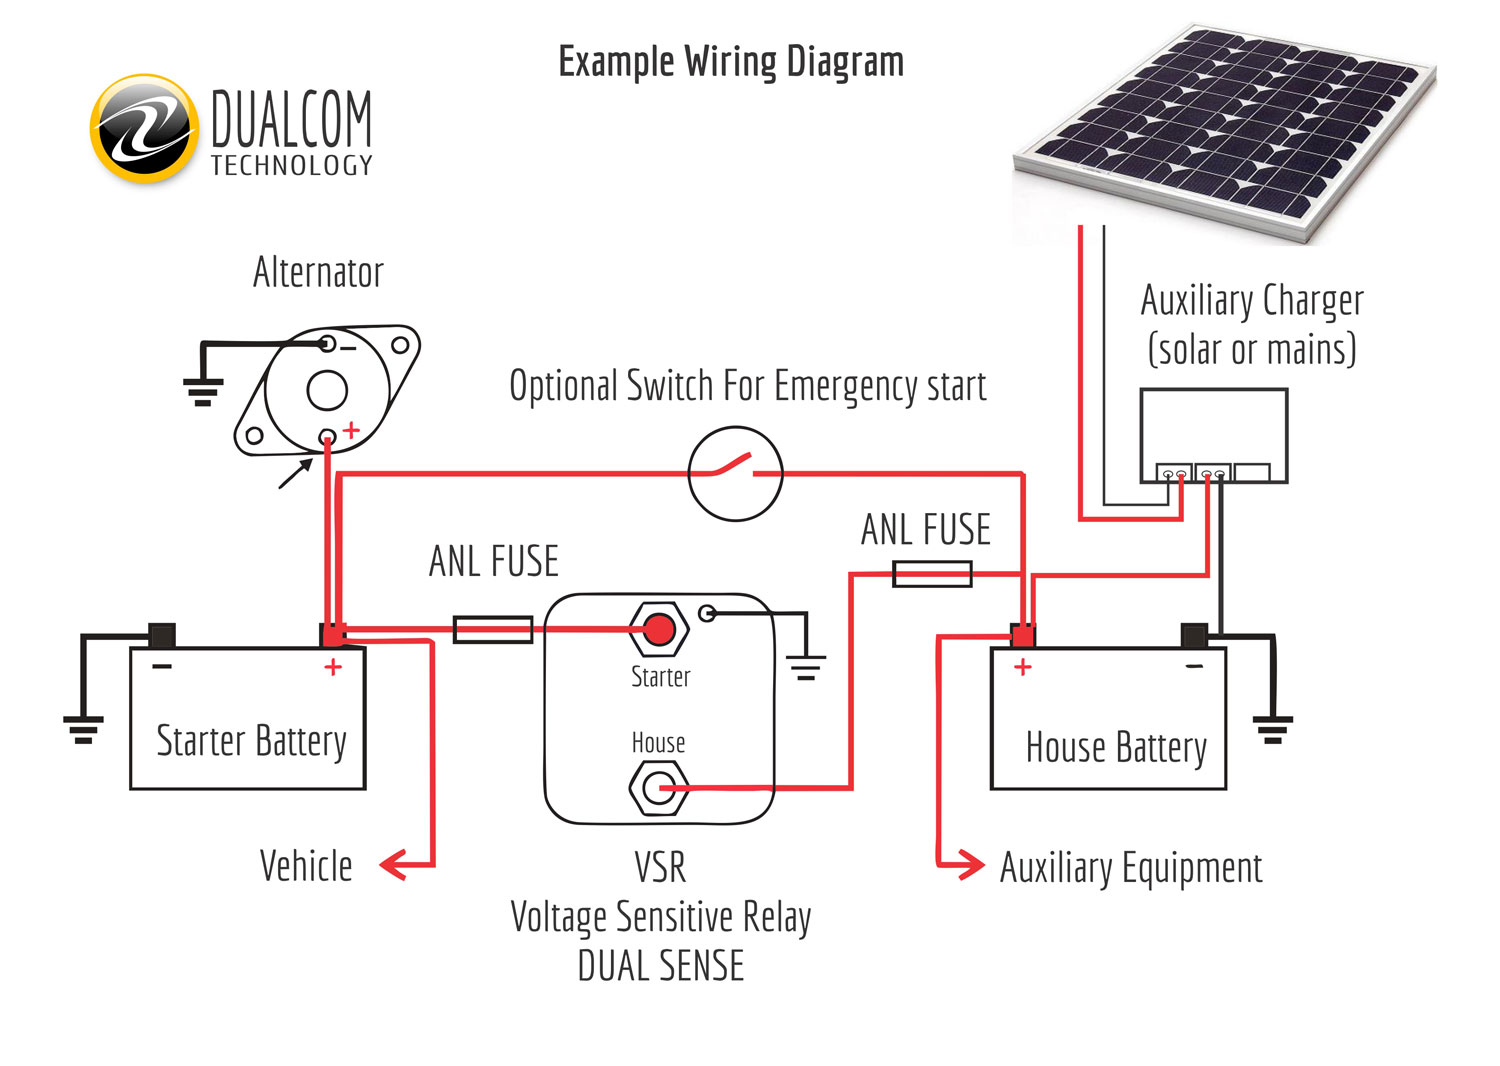 wiring diagram VSR DUAL how a vsr (voltage sensitive relay) works energy unlimited vsr wiring diagram at mifinder.co